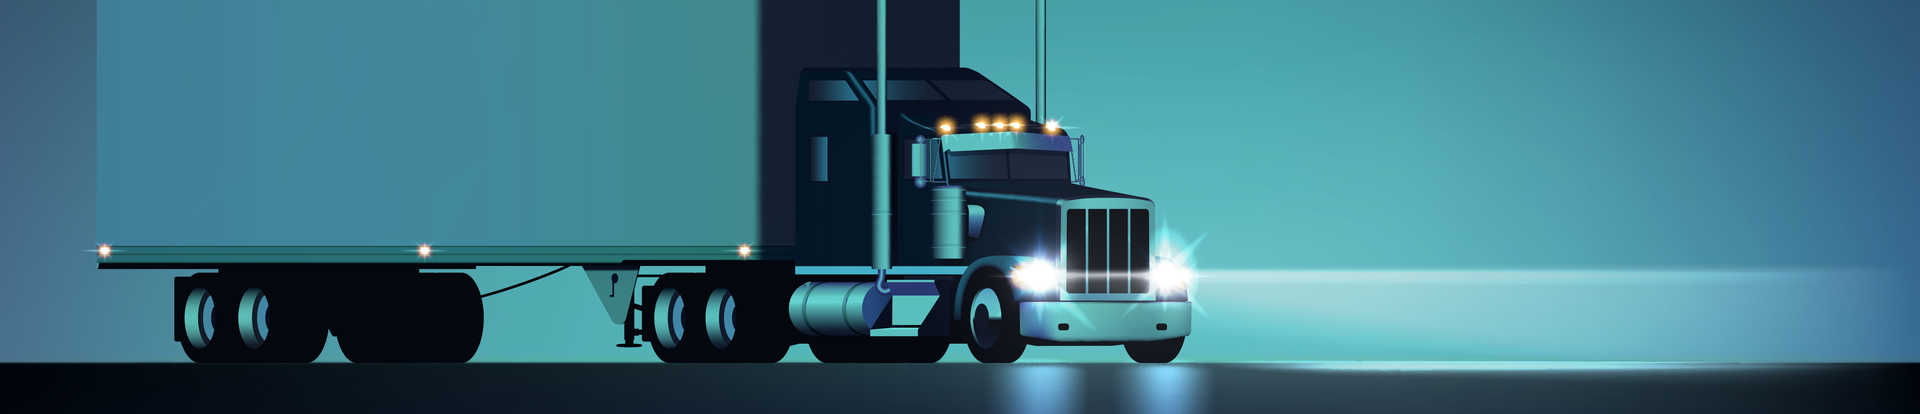 Big rig semi truck with headlights on against a teal blue background